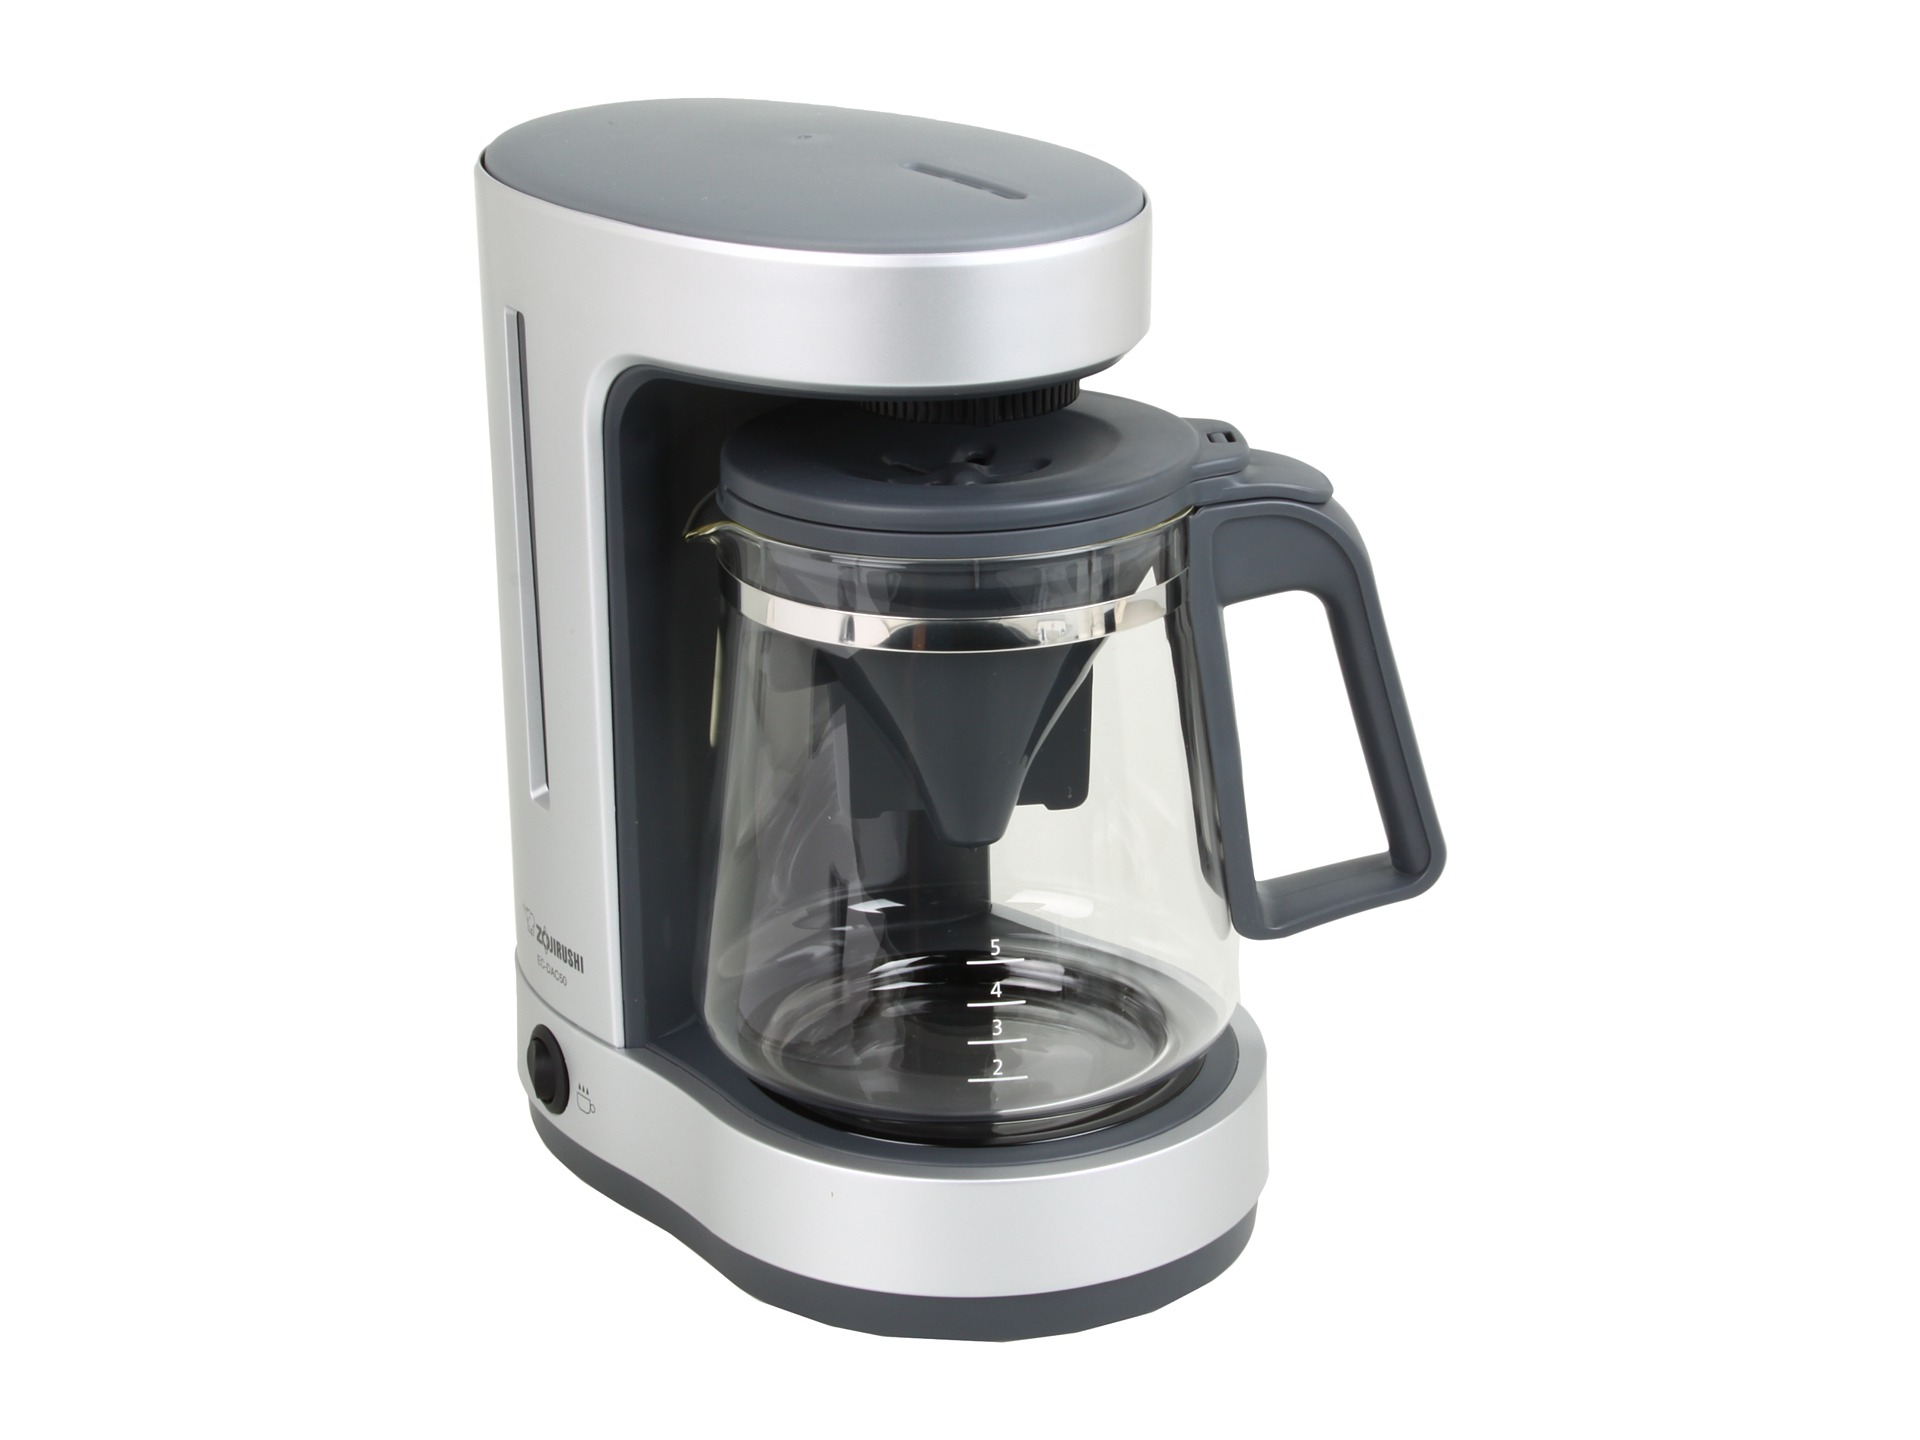 5 Cup Coffee Maker Zojirushi : Zojirushi Ec Dac50 Zutto 5 Cup Coffee Maker Shipped Free at Zappos